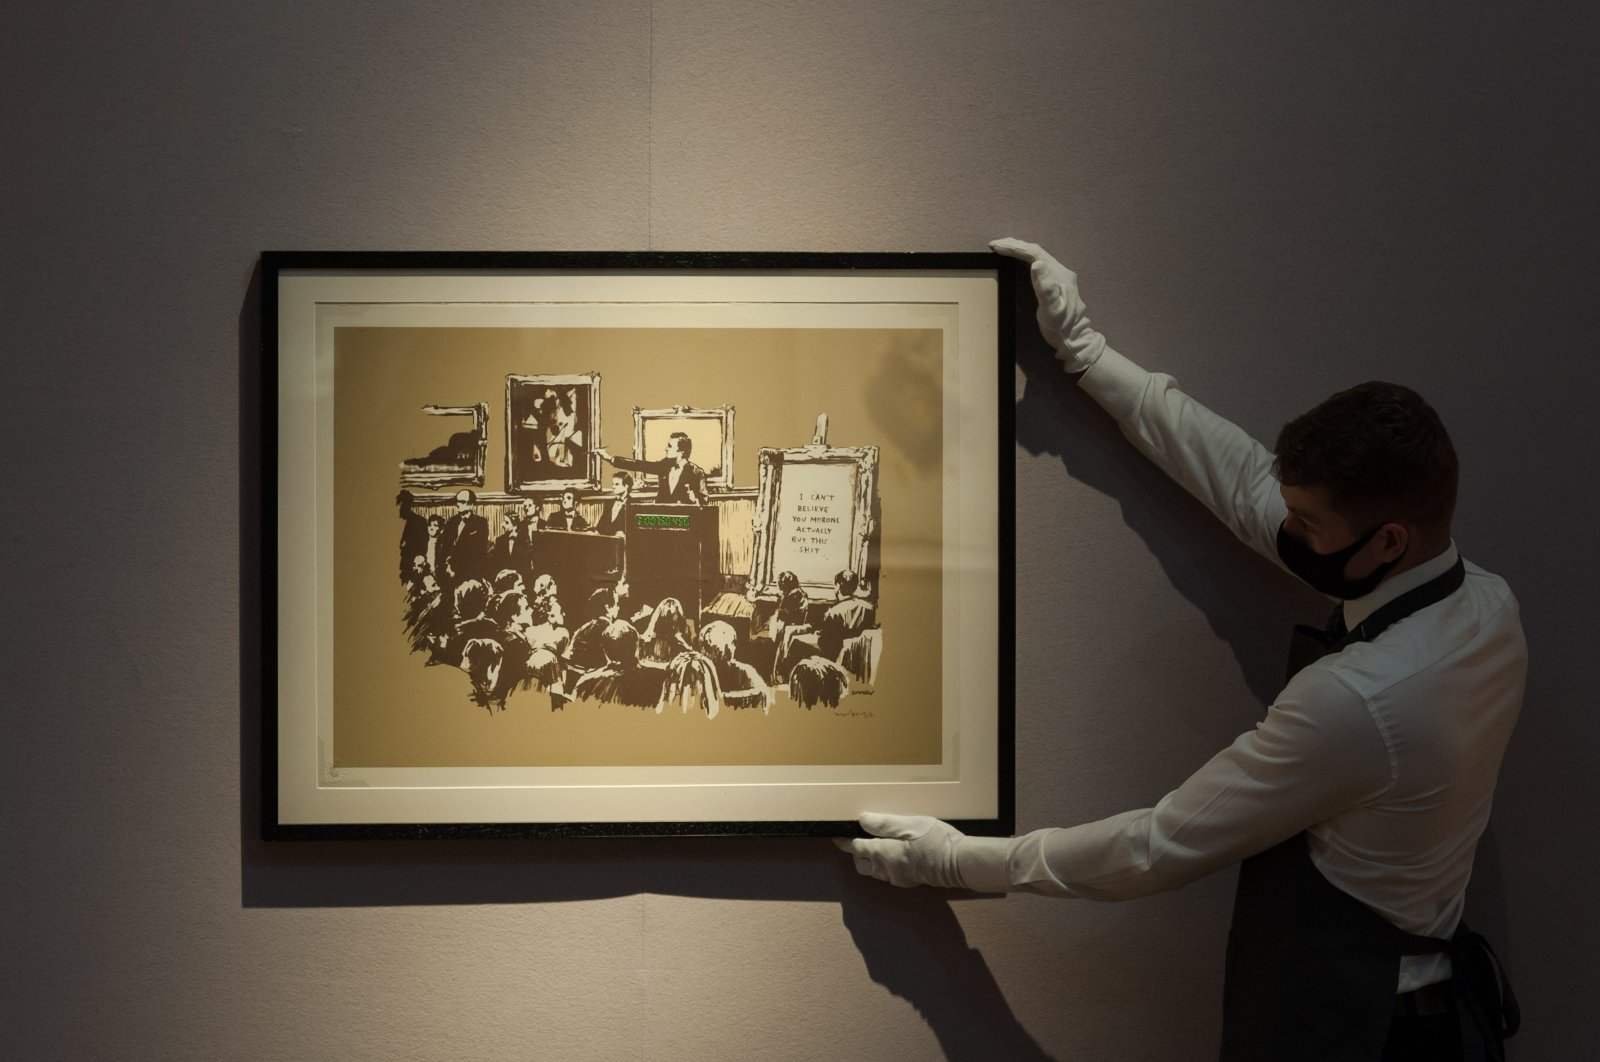 """A staff member poses with """"Morons (Sepia)"""" screenprint in colors, 2007, by Banksy during a press preview at Christie's in London, England, on Sept. 09, 2020. (Photo by WIktor Szymanowicz/NurPhoto via Getty Images)"""